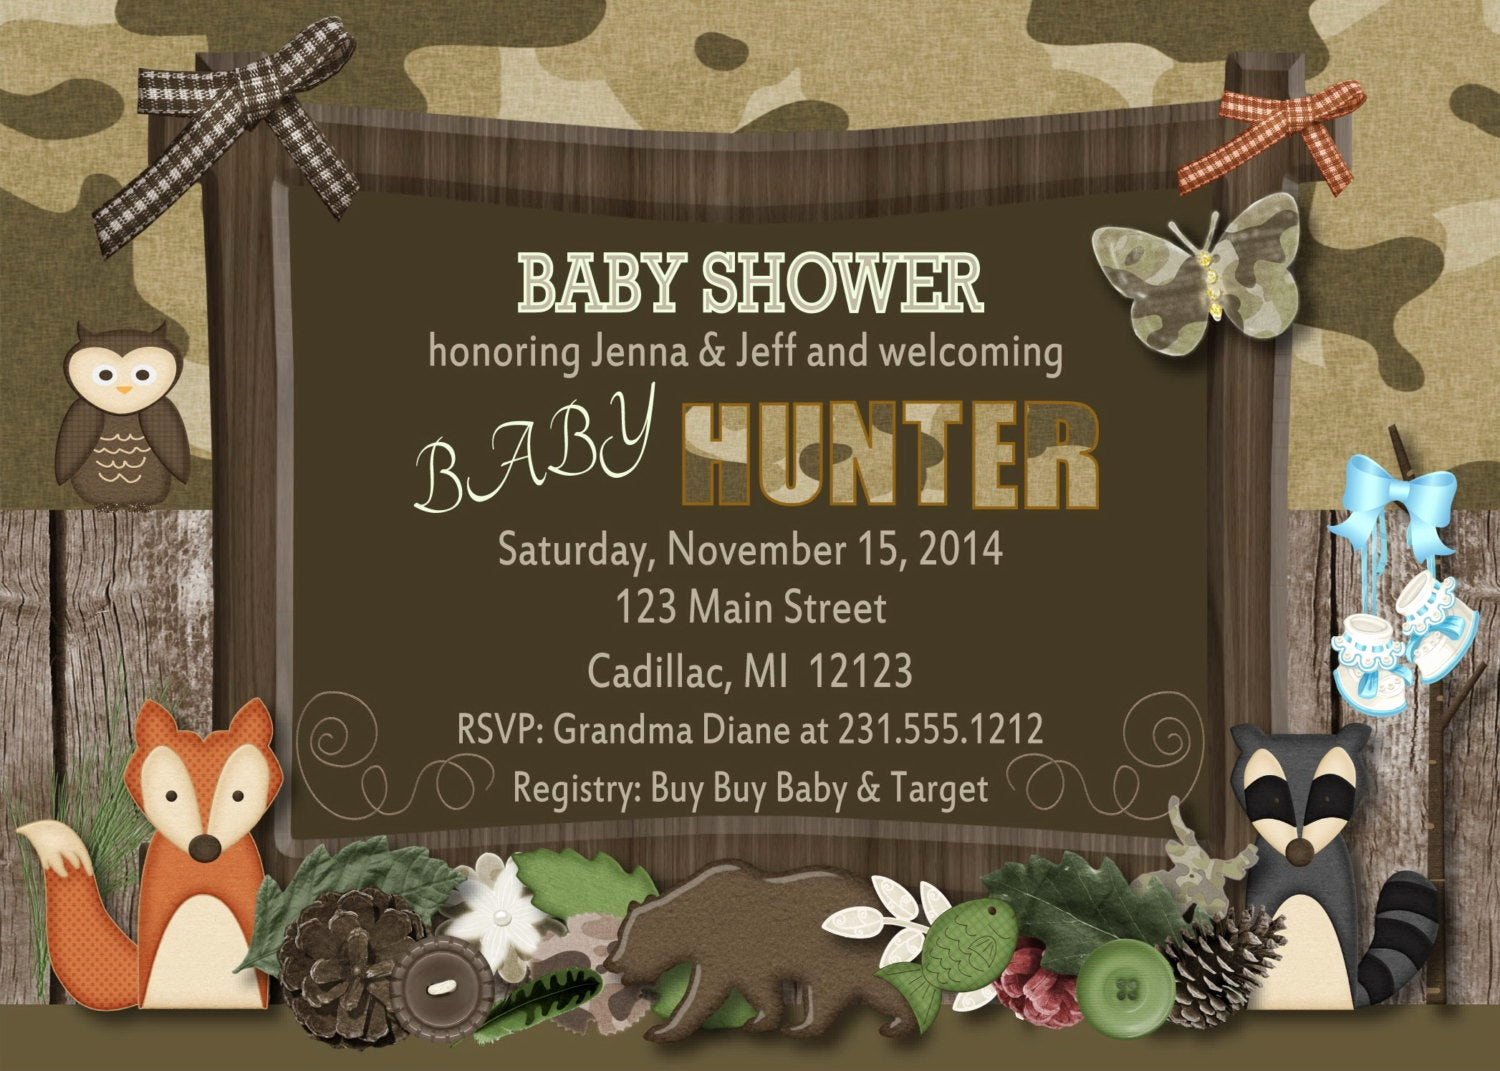 Camo Baby Shower Invitation Luxury Woodland Baby Shower Invitation Fall Camo theme Baby Shower